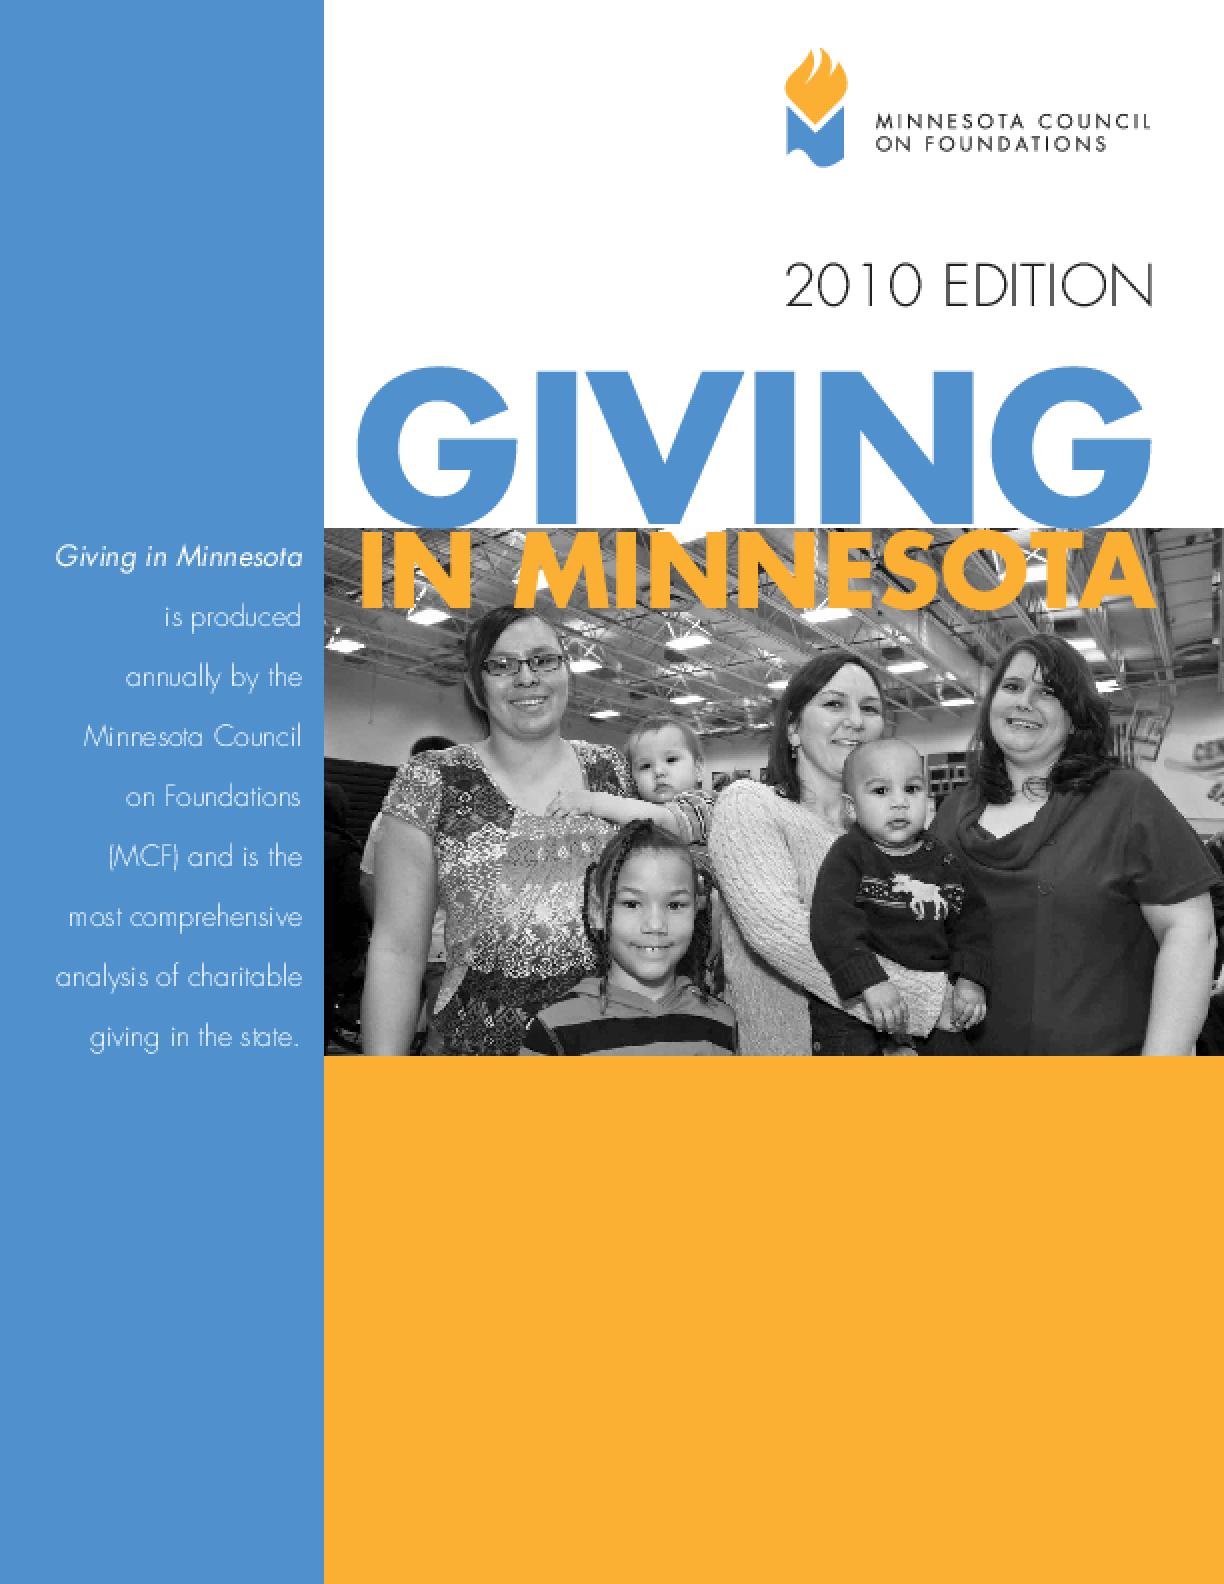 Giving in Minnesota 2010 Edition Summary